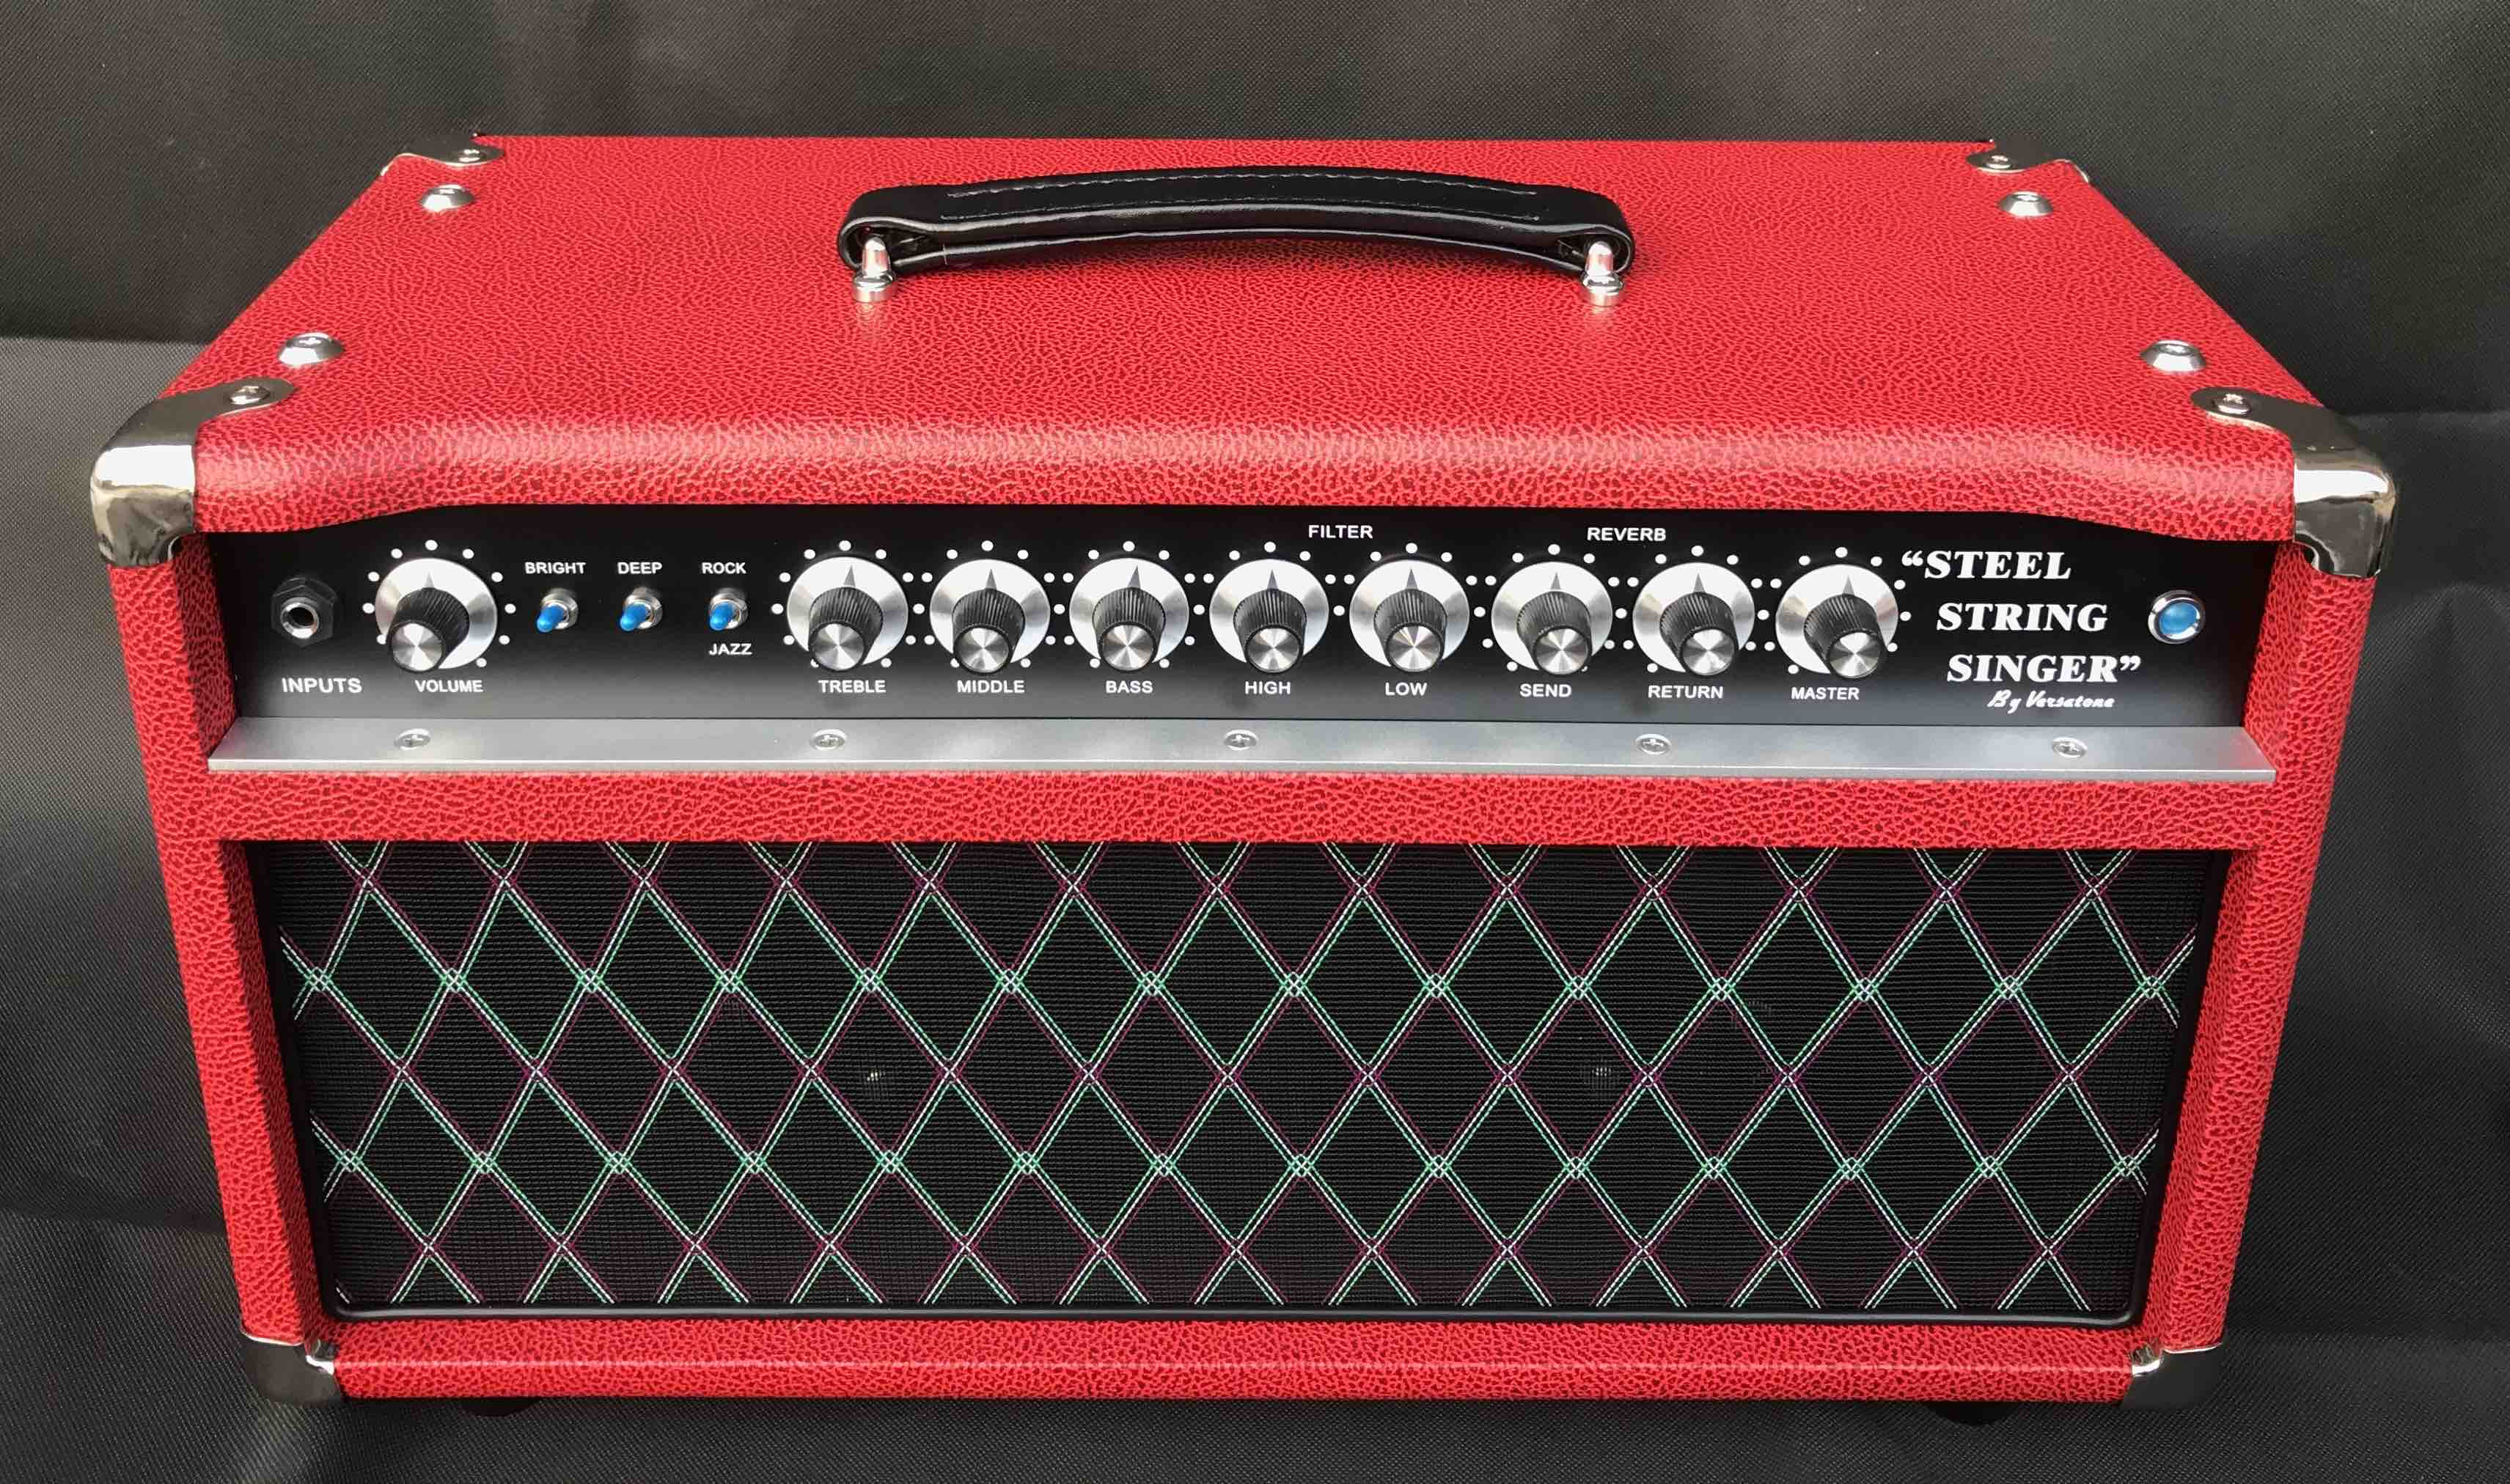 Professional Tube Guitar AMP Head 100W Dumble Tone SSS Steel String Singer Valve Amplifier in Red